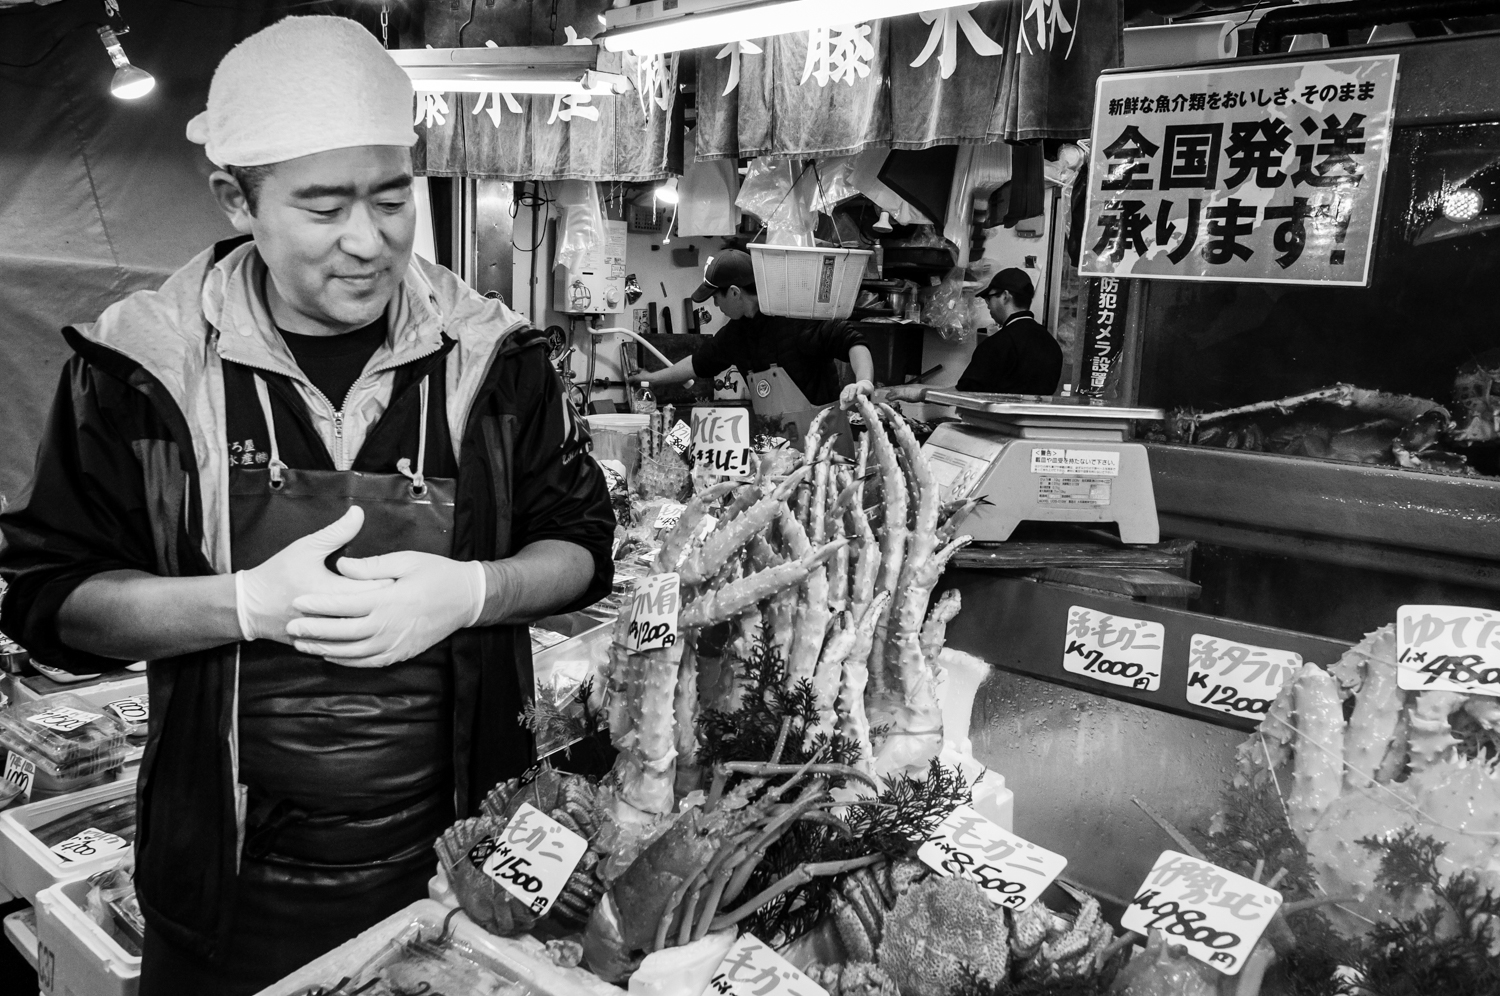 One of the many retailers at the outer market, selling any kind of fish and shellfish.